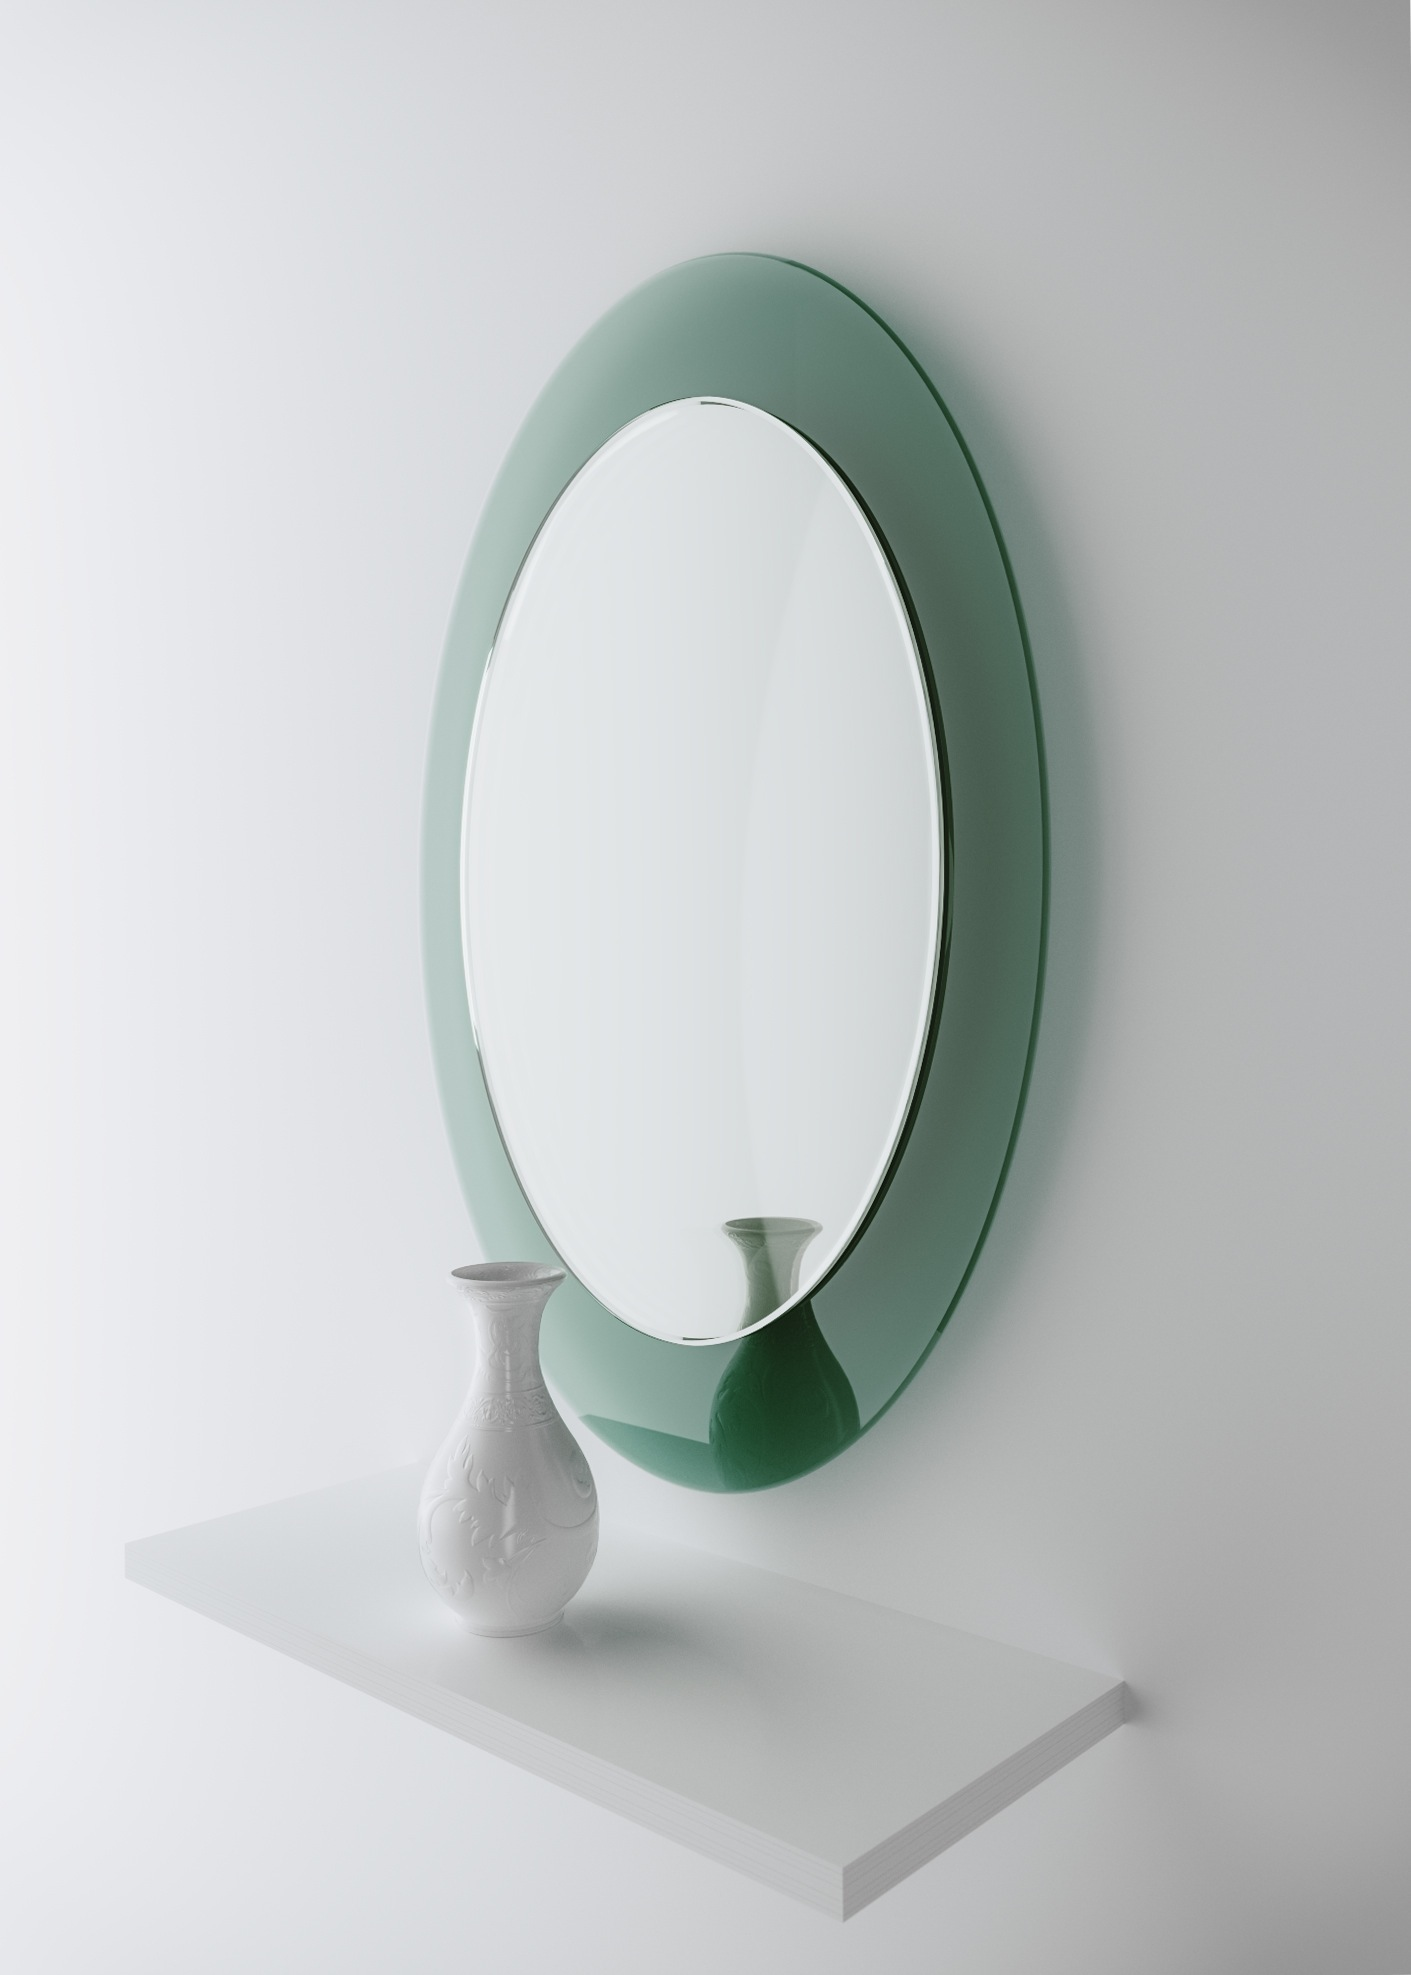 Studio photograph of aqua glass mirror by Color and Mirror.